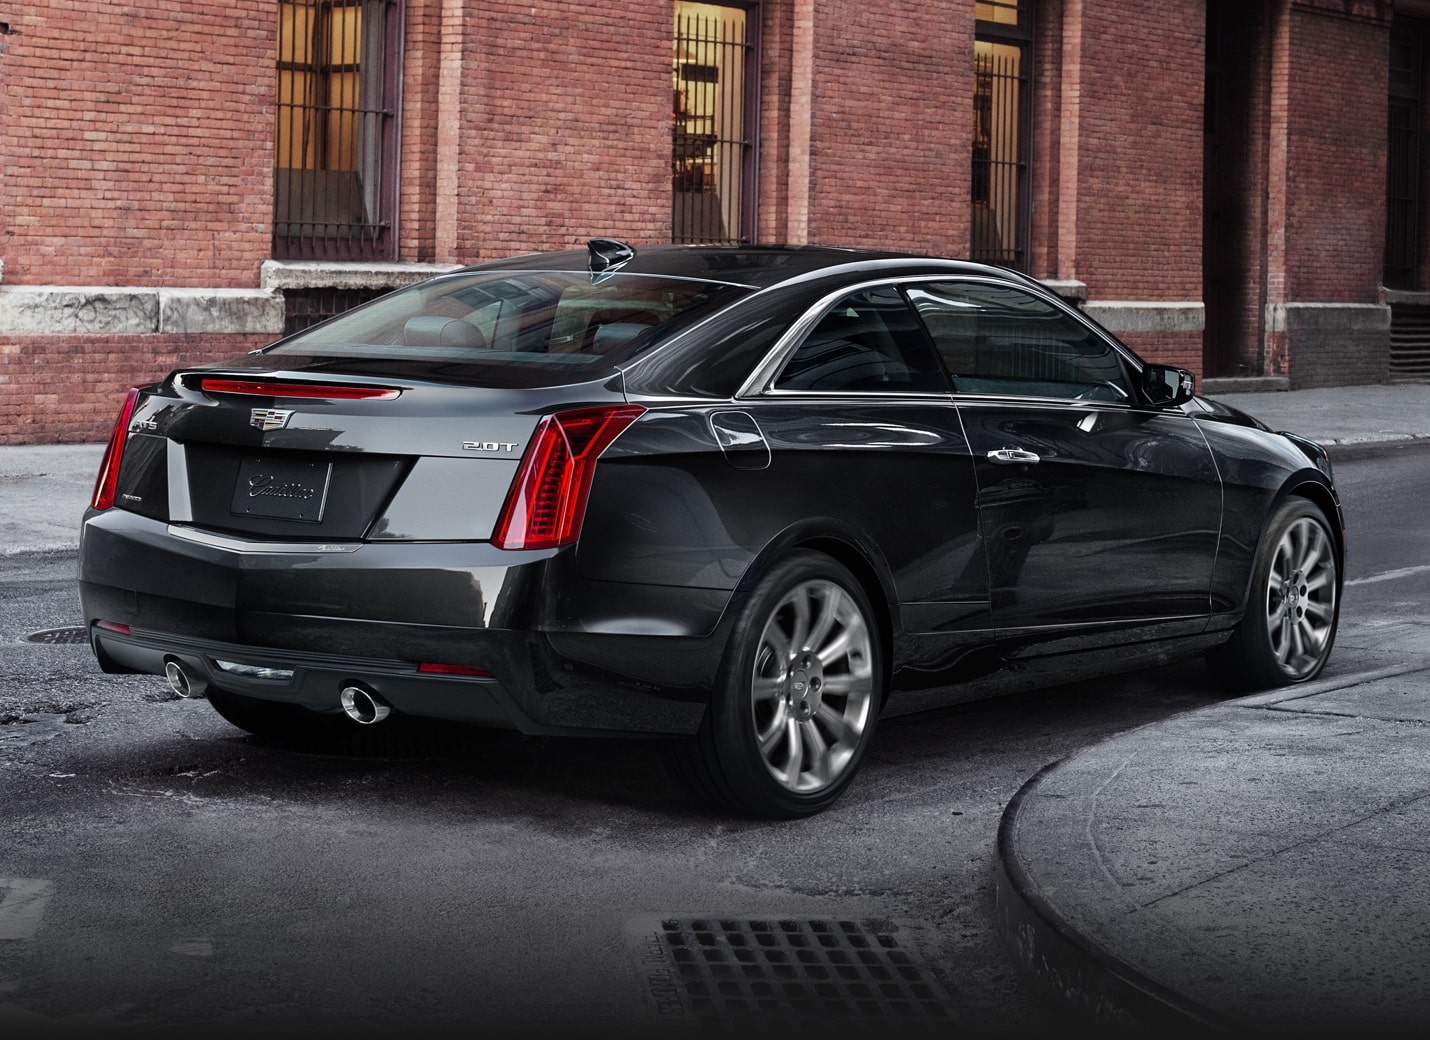 Superb Rear Of ATS Coupe